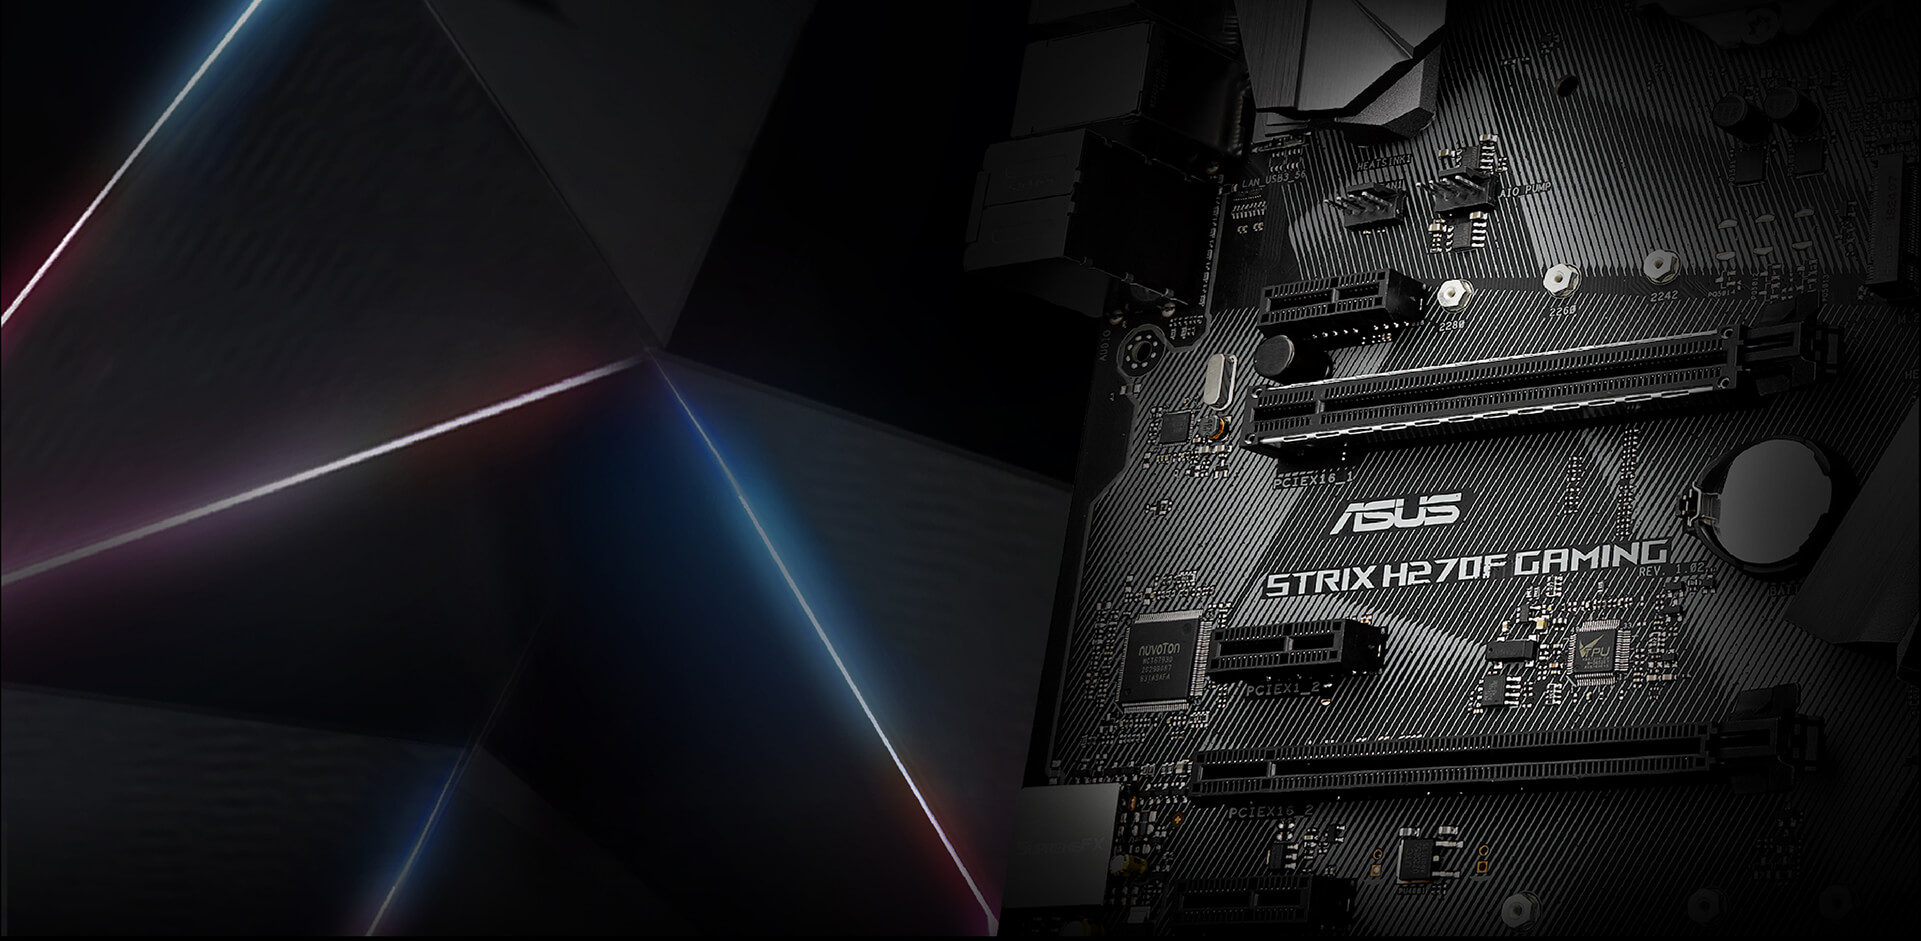 Rog Strix H270f Gaming Motherboards Asus Usa Correspondence Of The Pins On Hdmi To Dvid Cable Stylish Pcb Matte Black Color With Striking Patterned Design